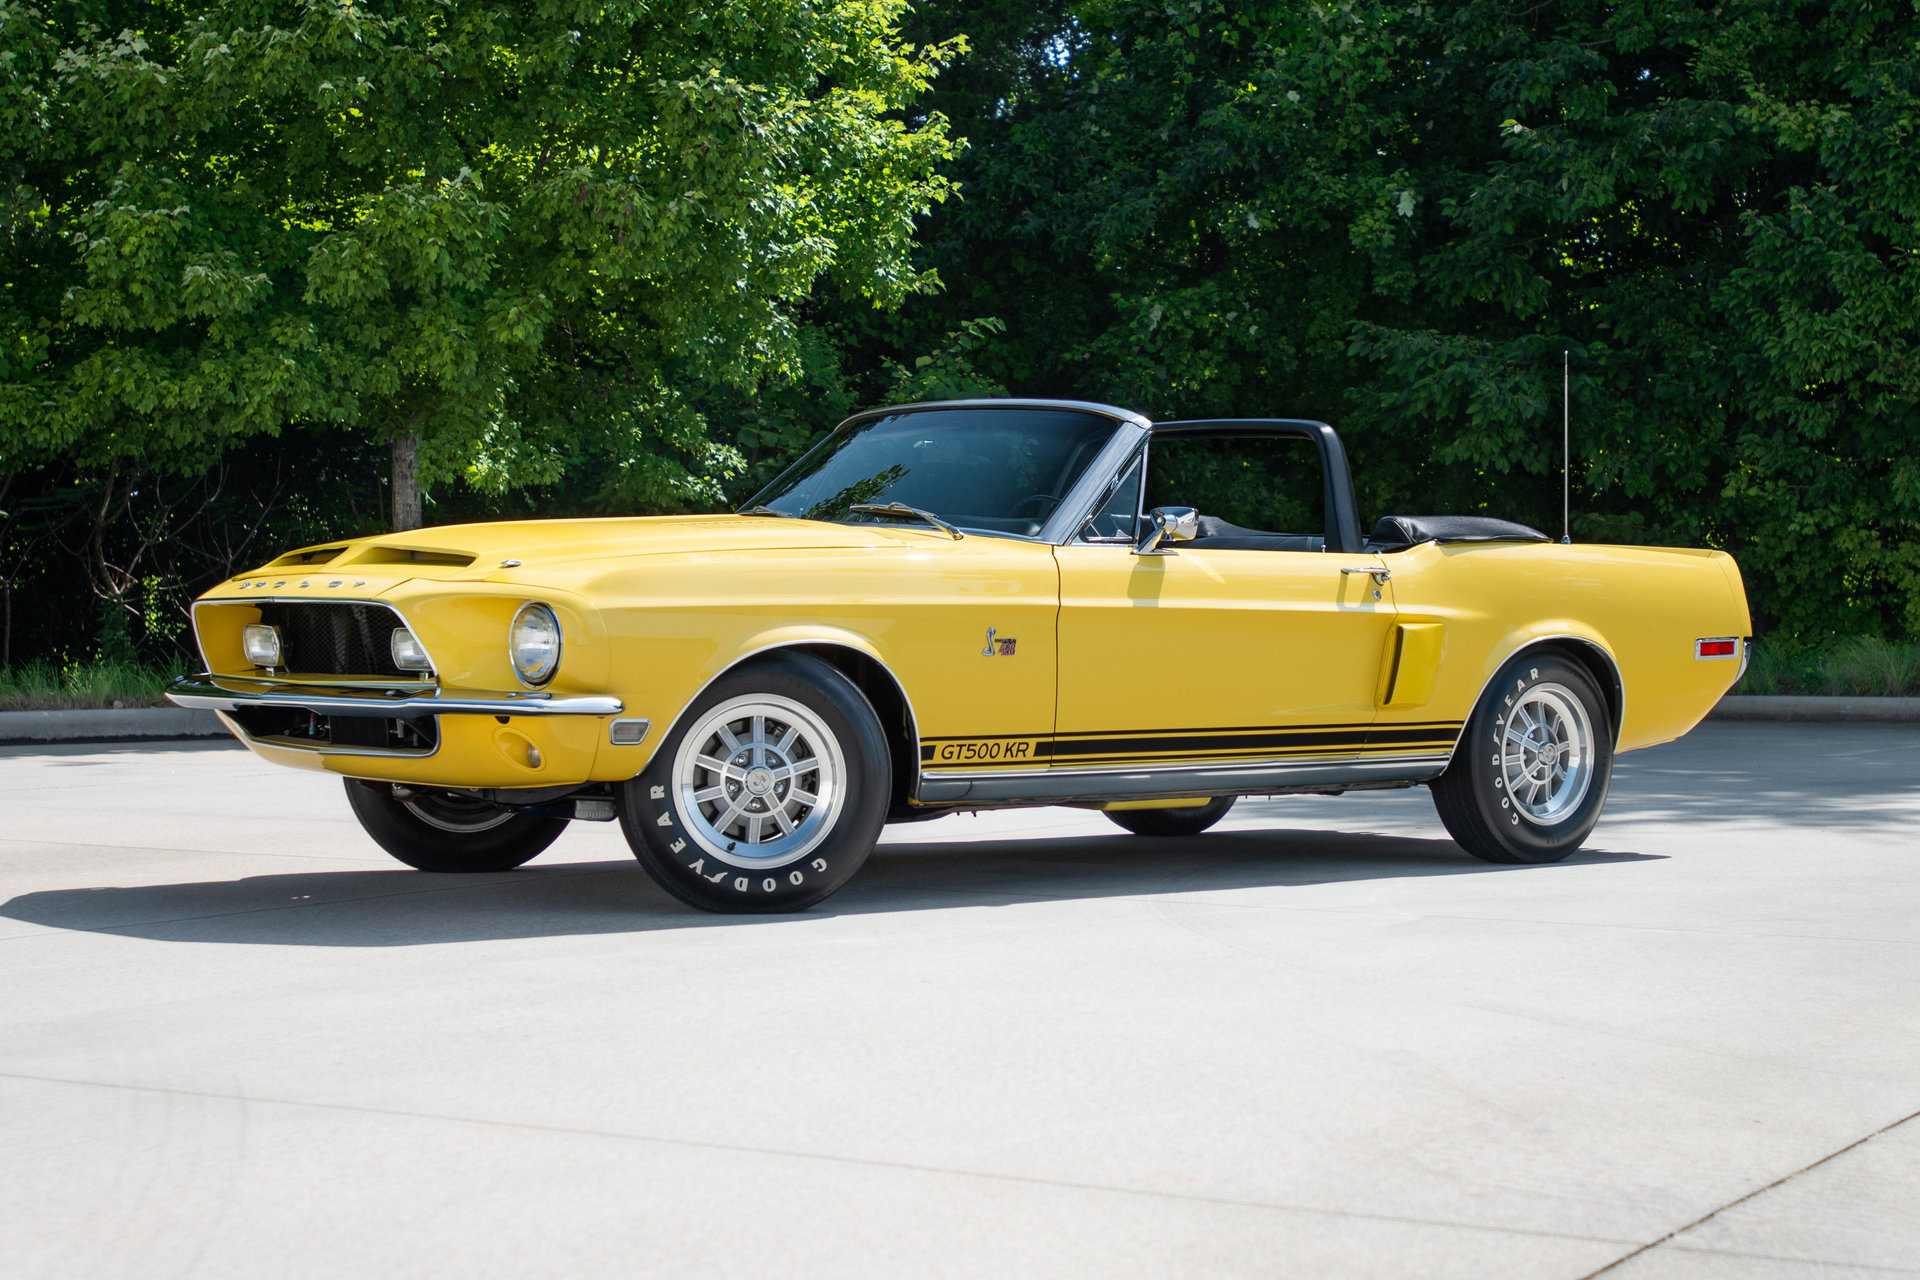 1968 Ford Shelby Mustang GT500KR for sale